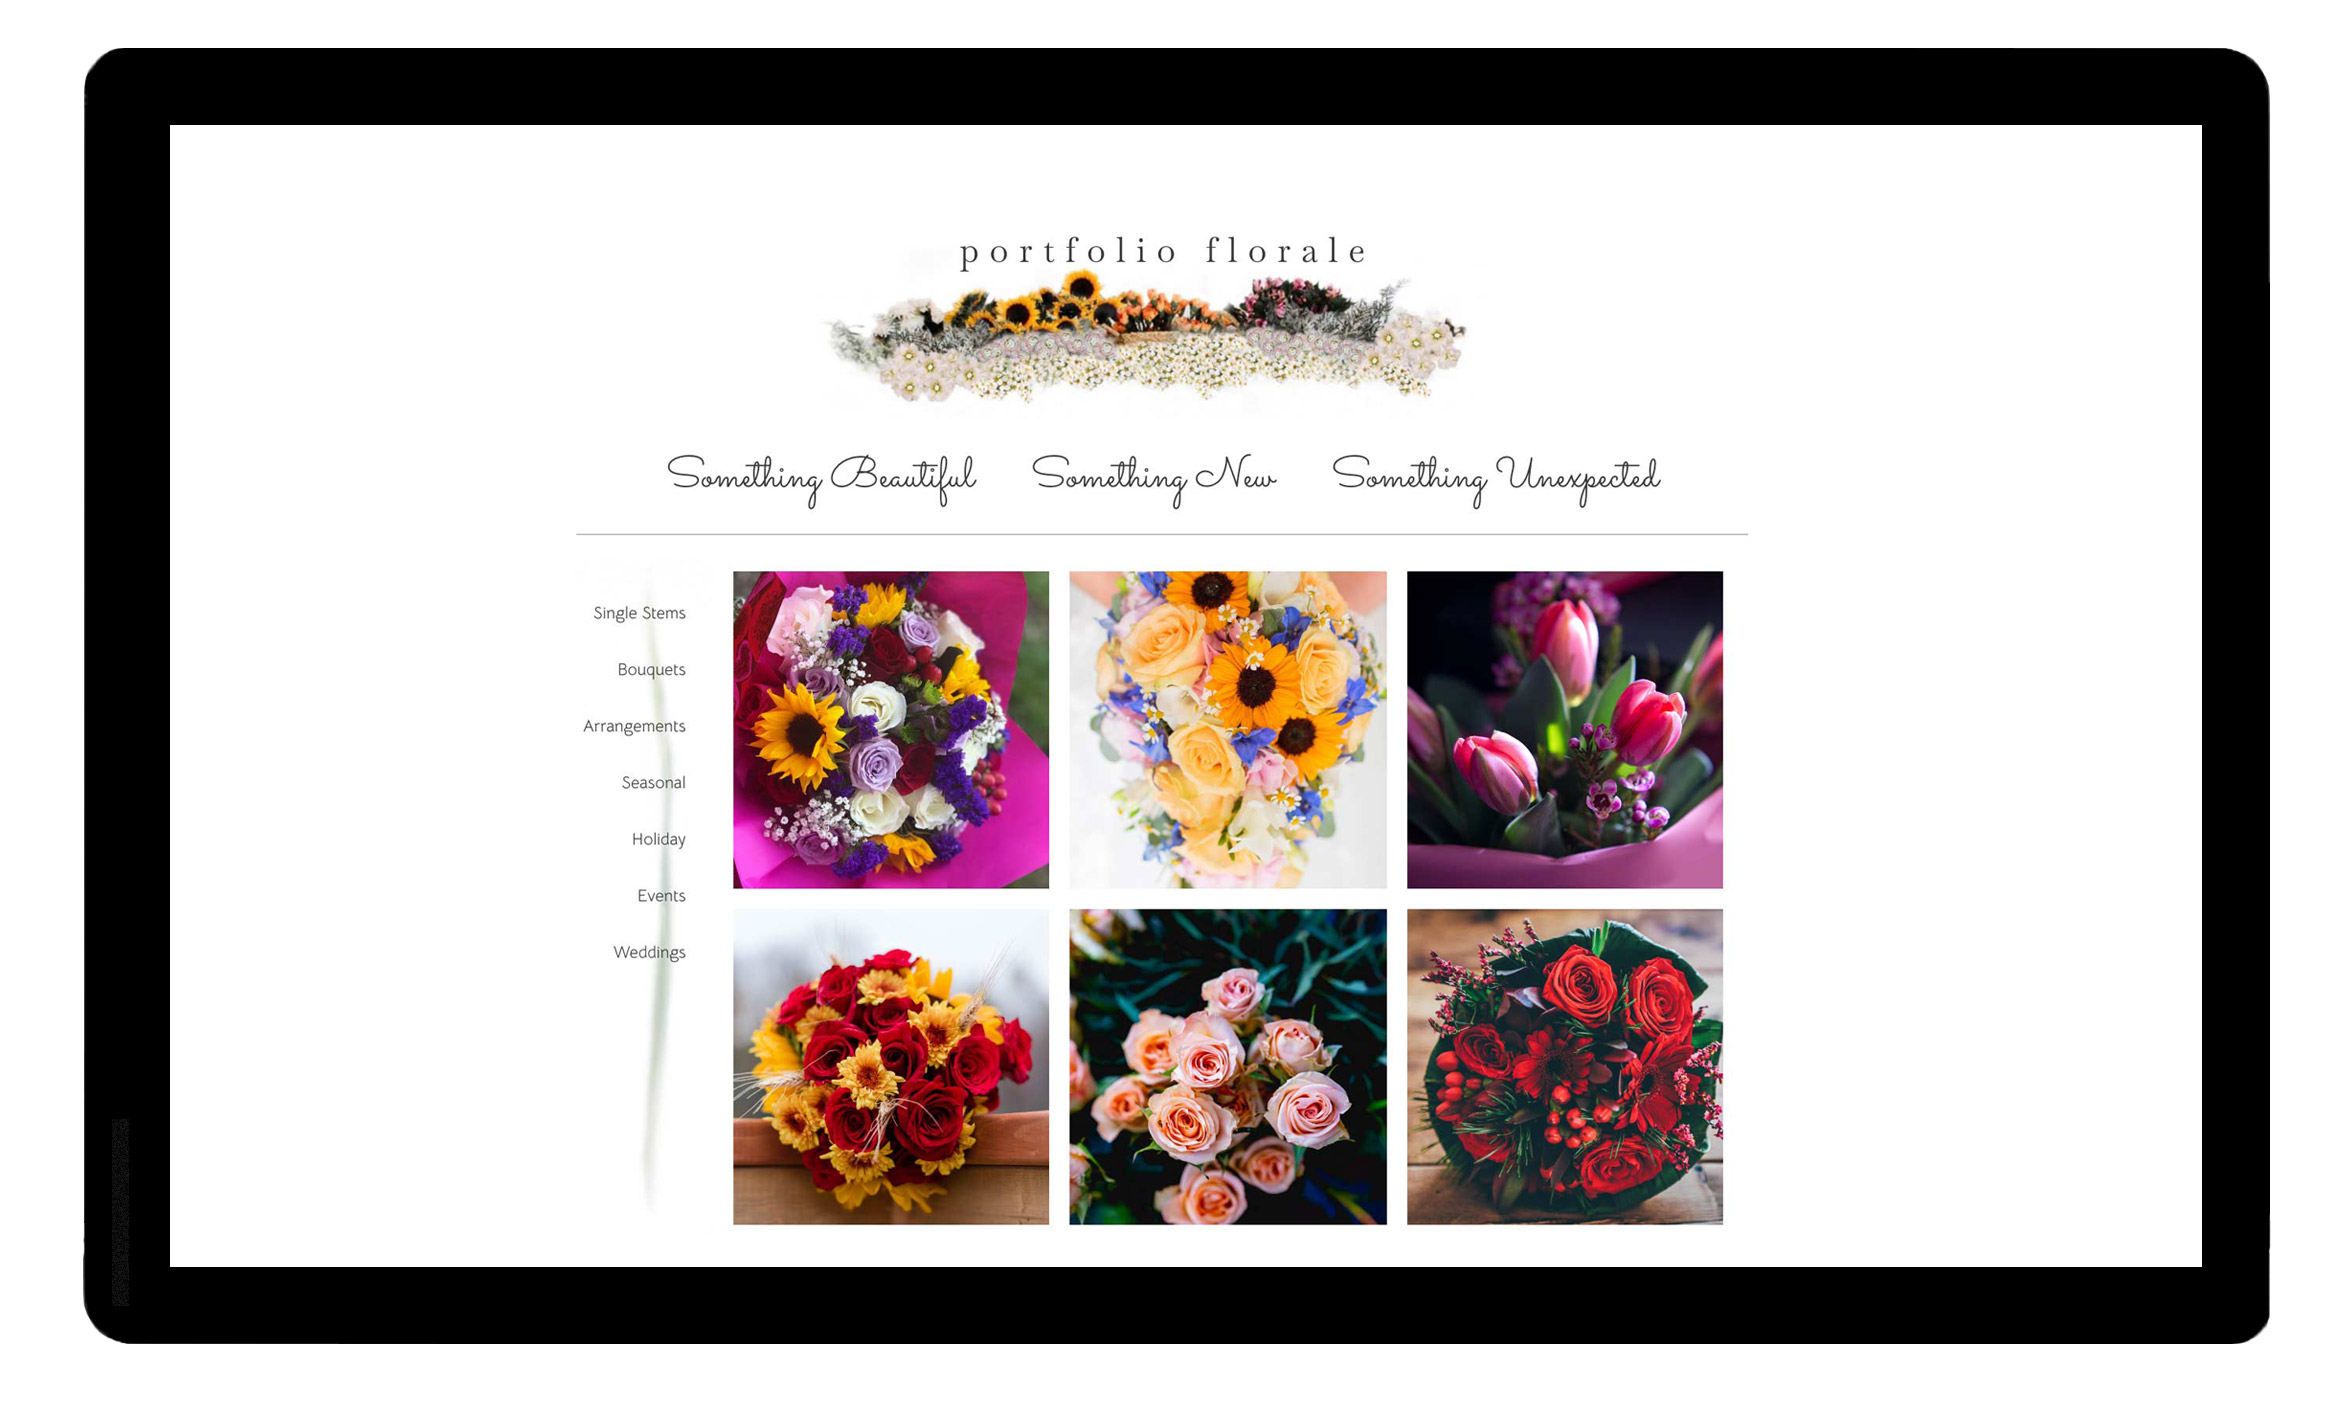 portfolio-florale-florist-website-design-company-framed-web-3